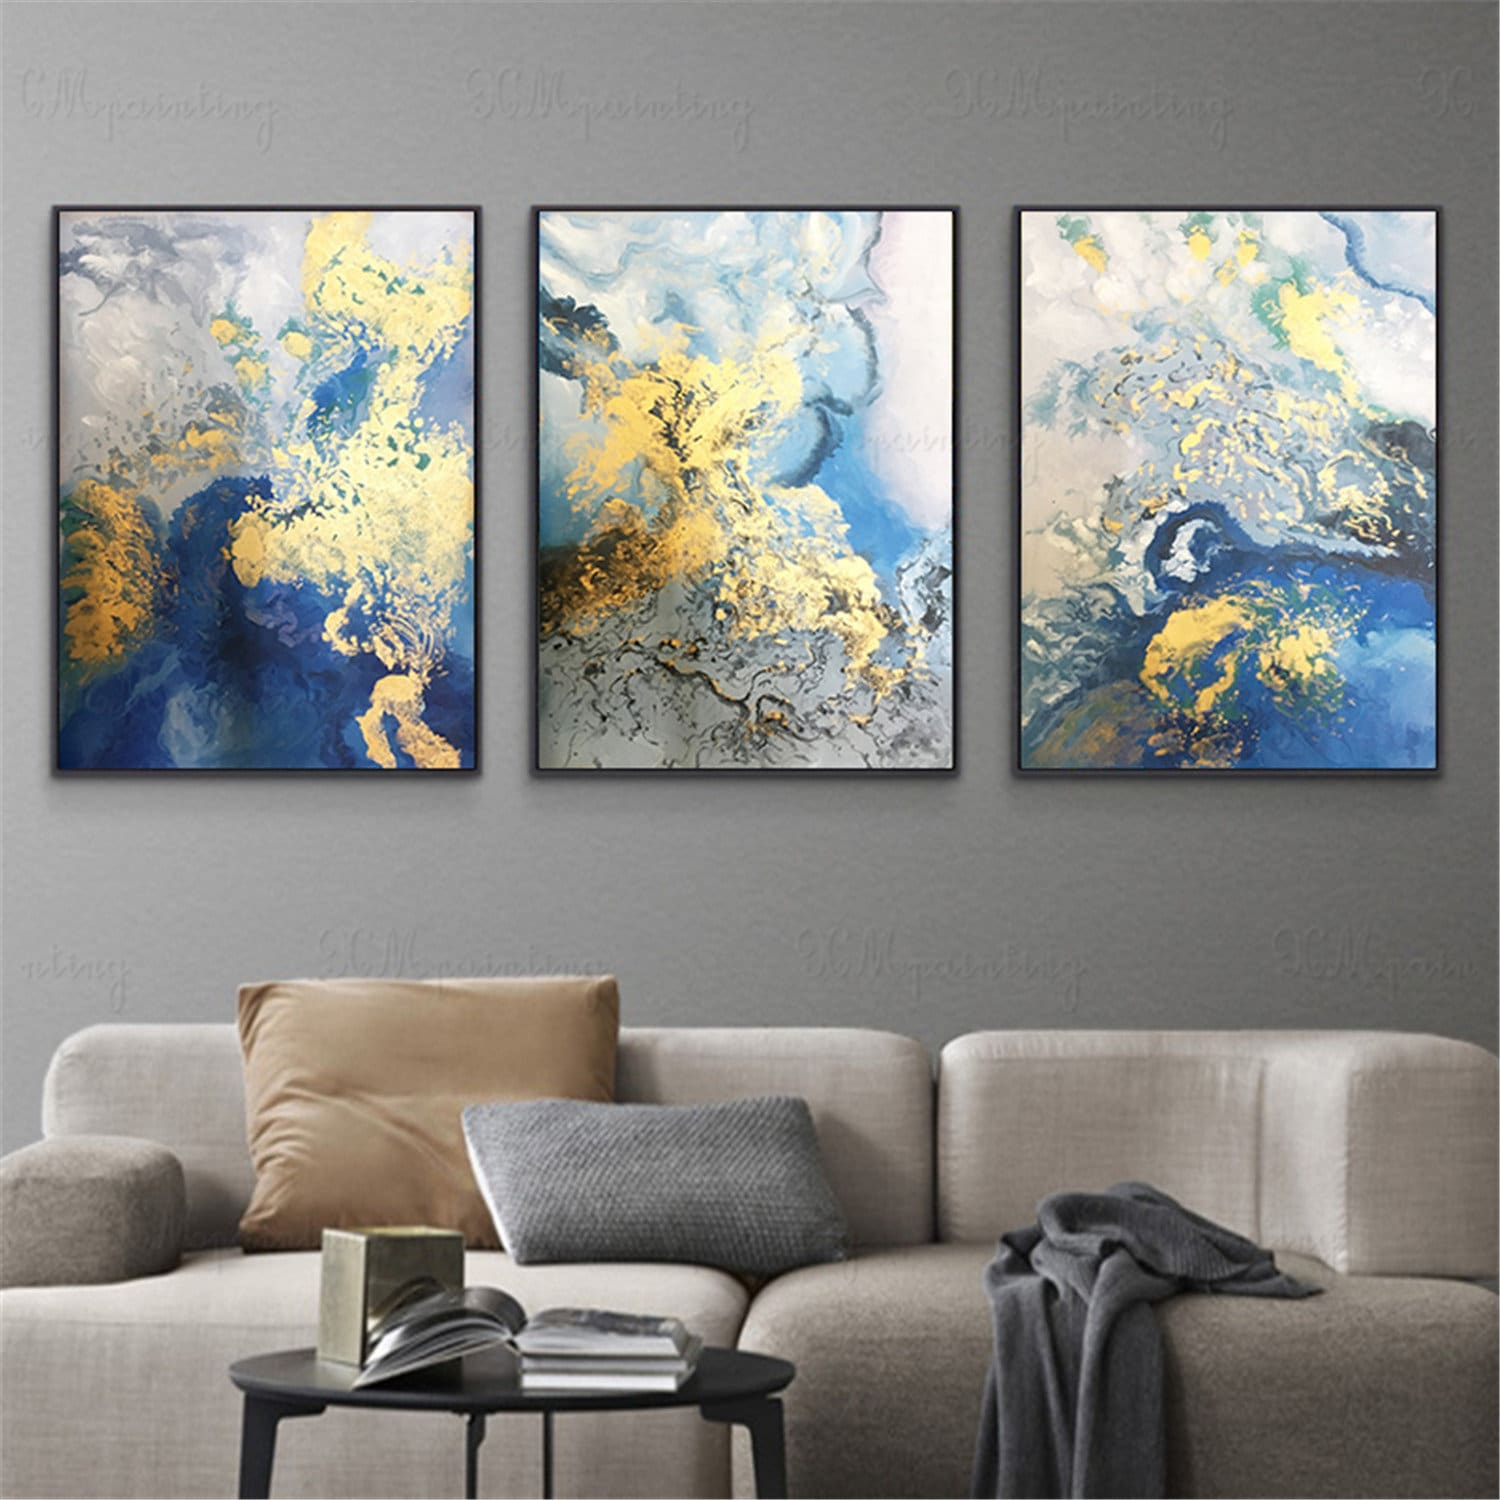 Abstract Painting Framed Wall Art Set of 3 Prints Abstract Green Blue and Yellow  Painting  Large 3 piece  Wall Art prints Ready to Hang